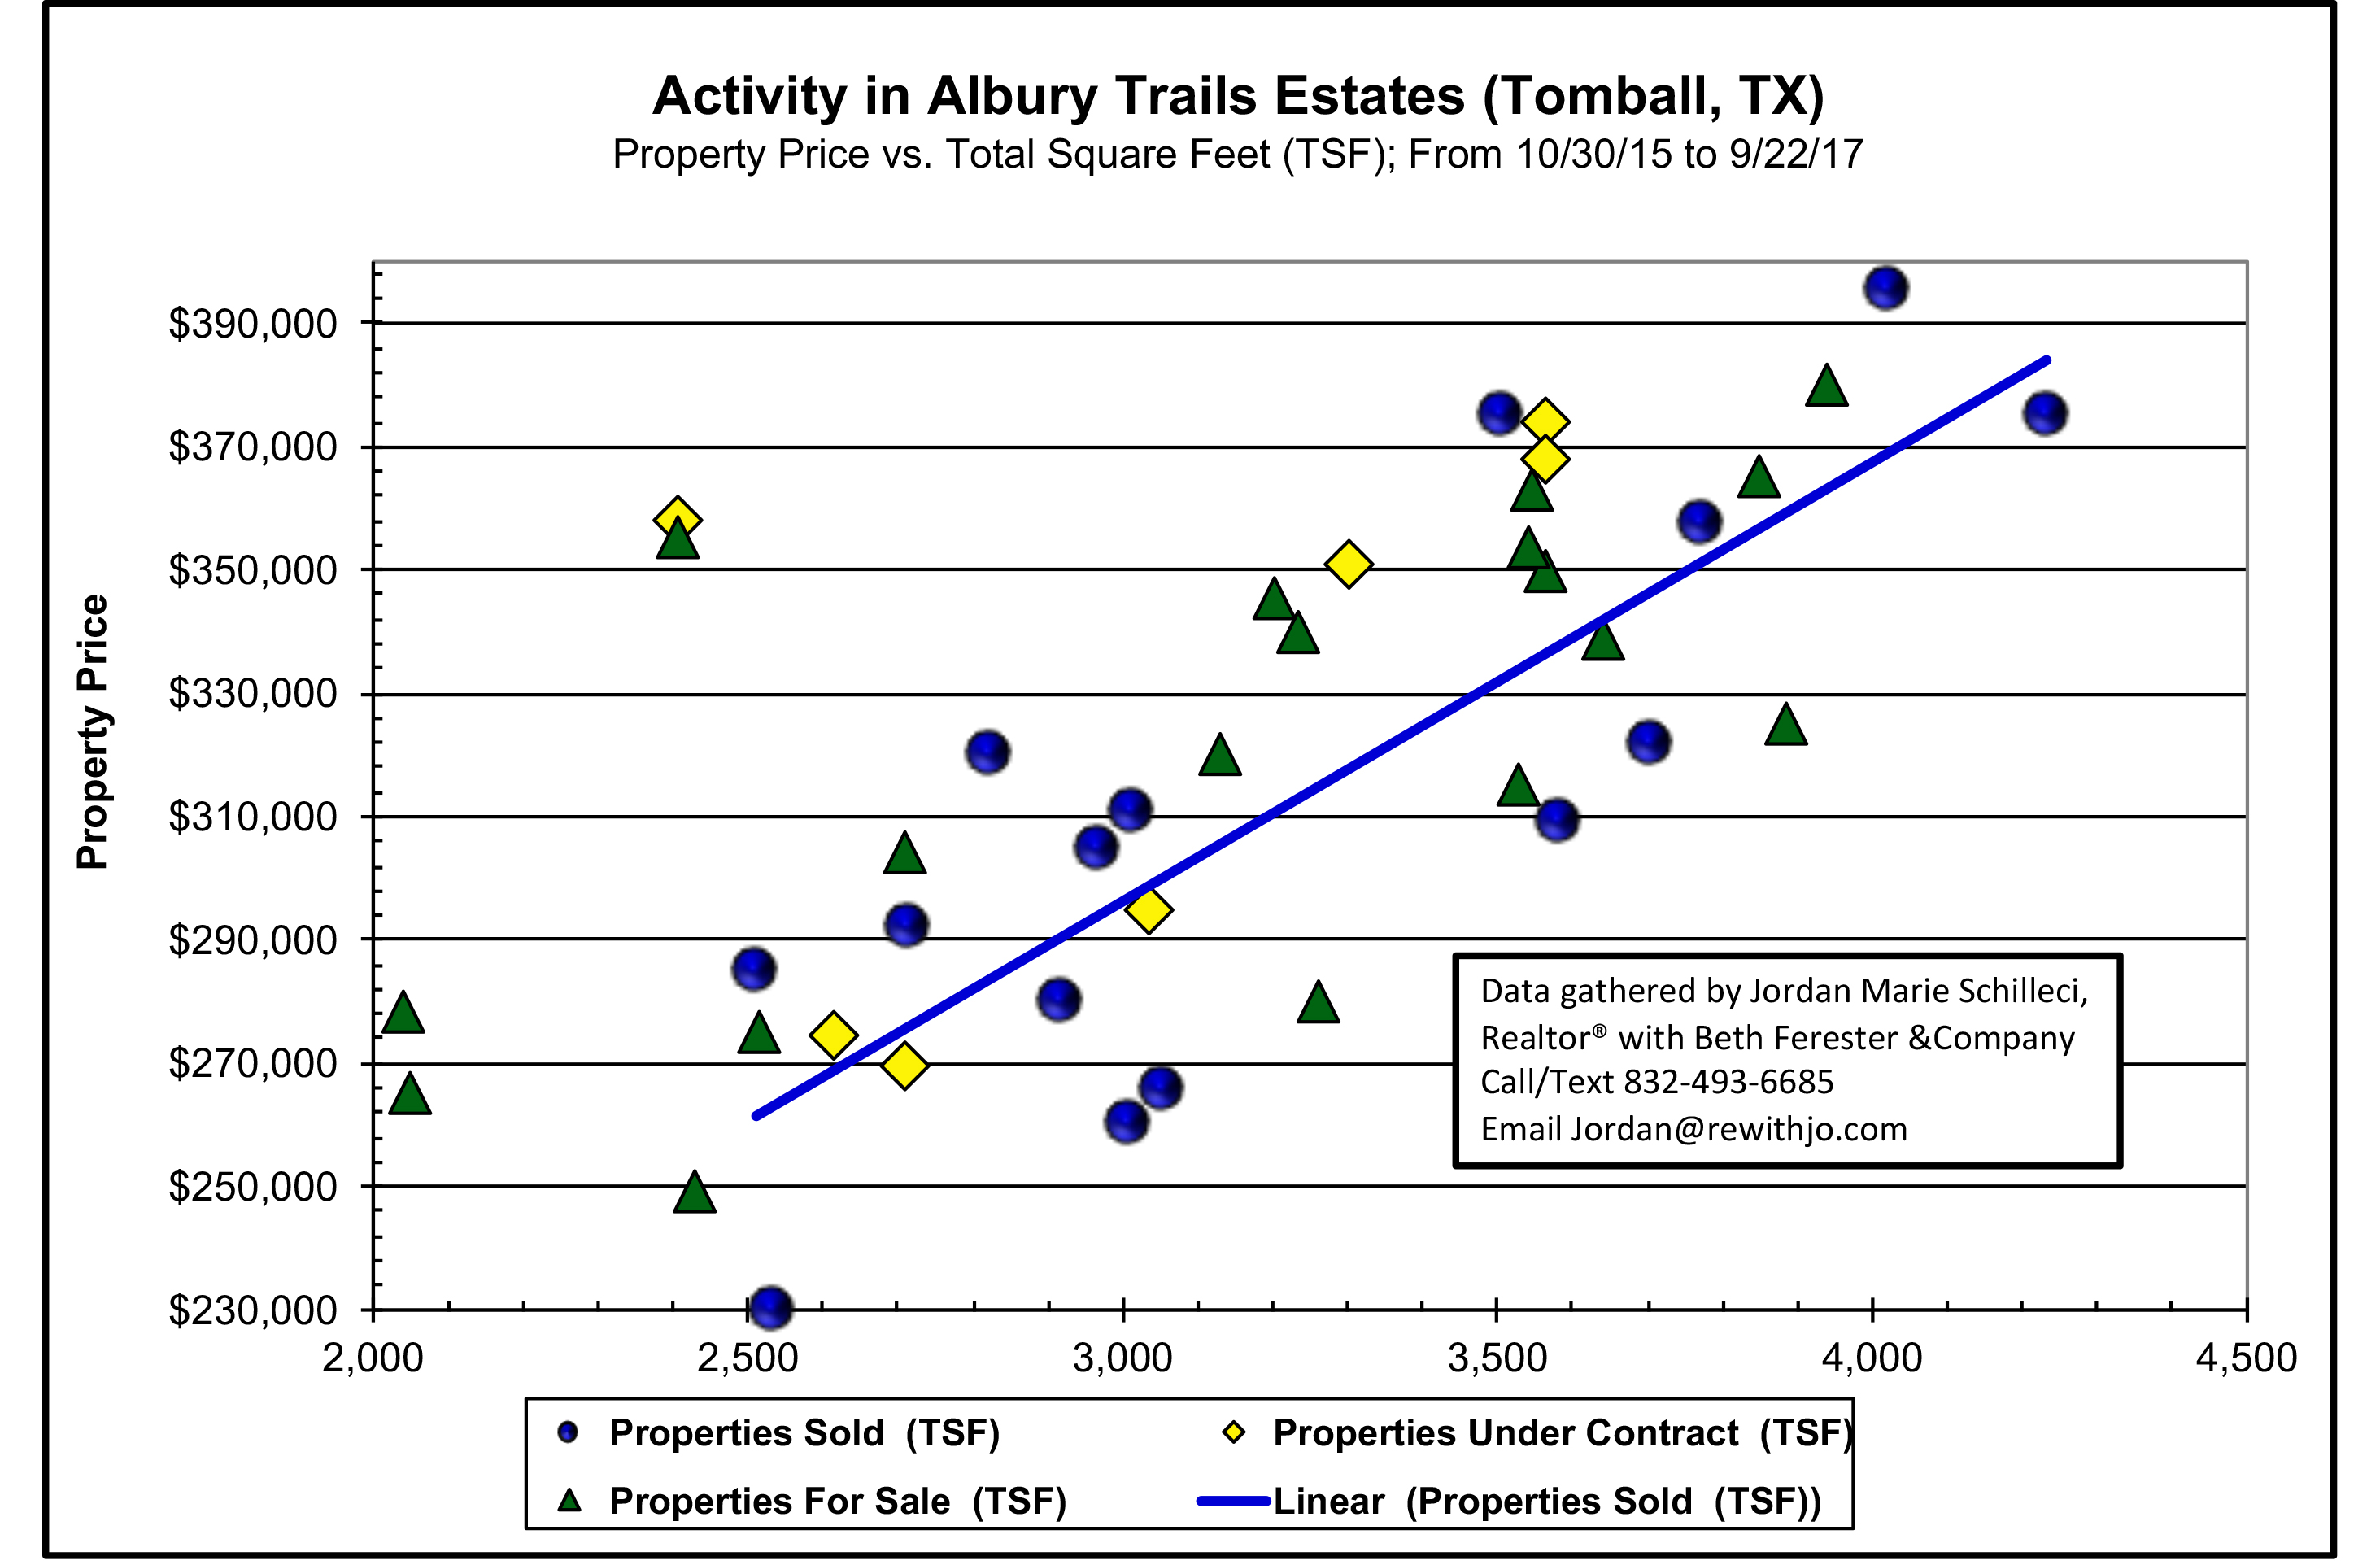 Albury Trails Estates Tomball Texas Market Update Odds of Selling Scattergram October 2017